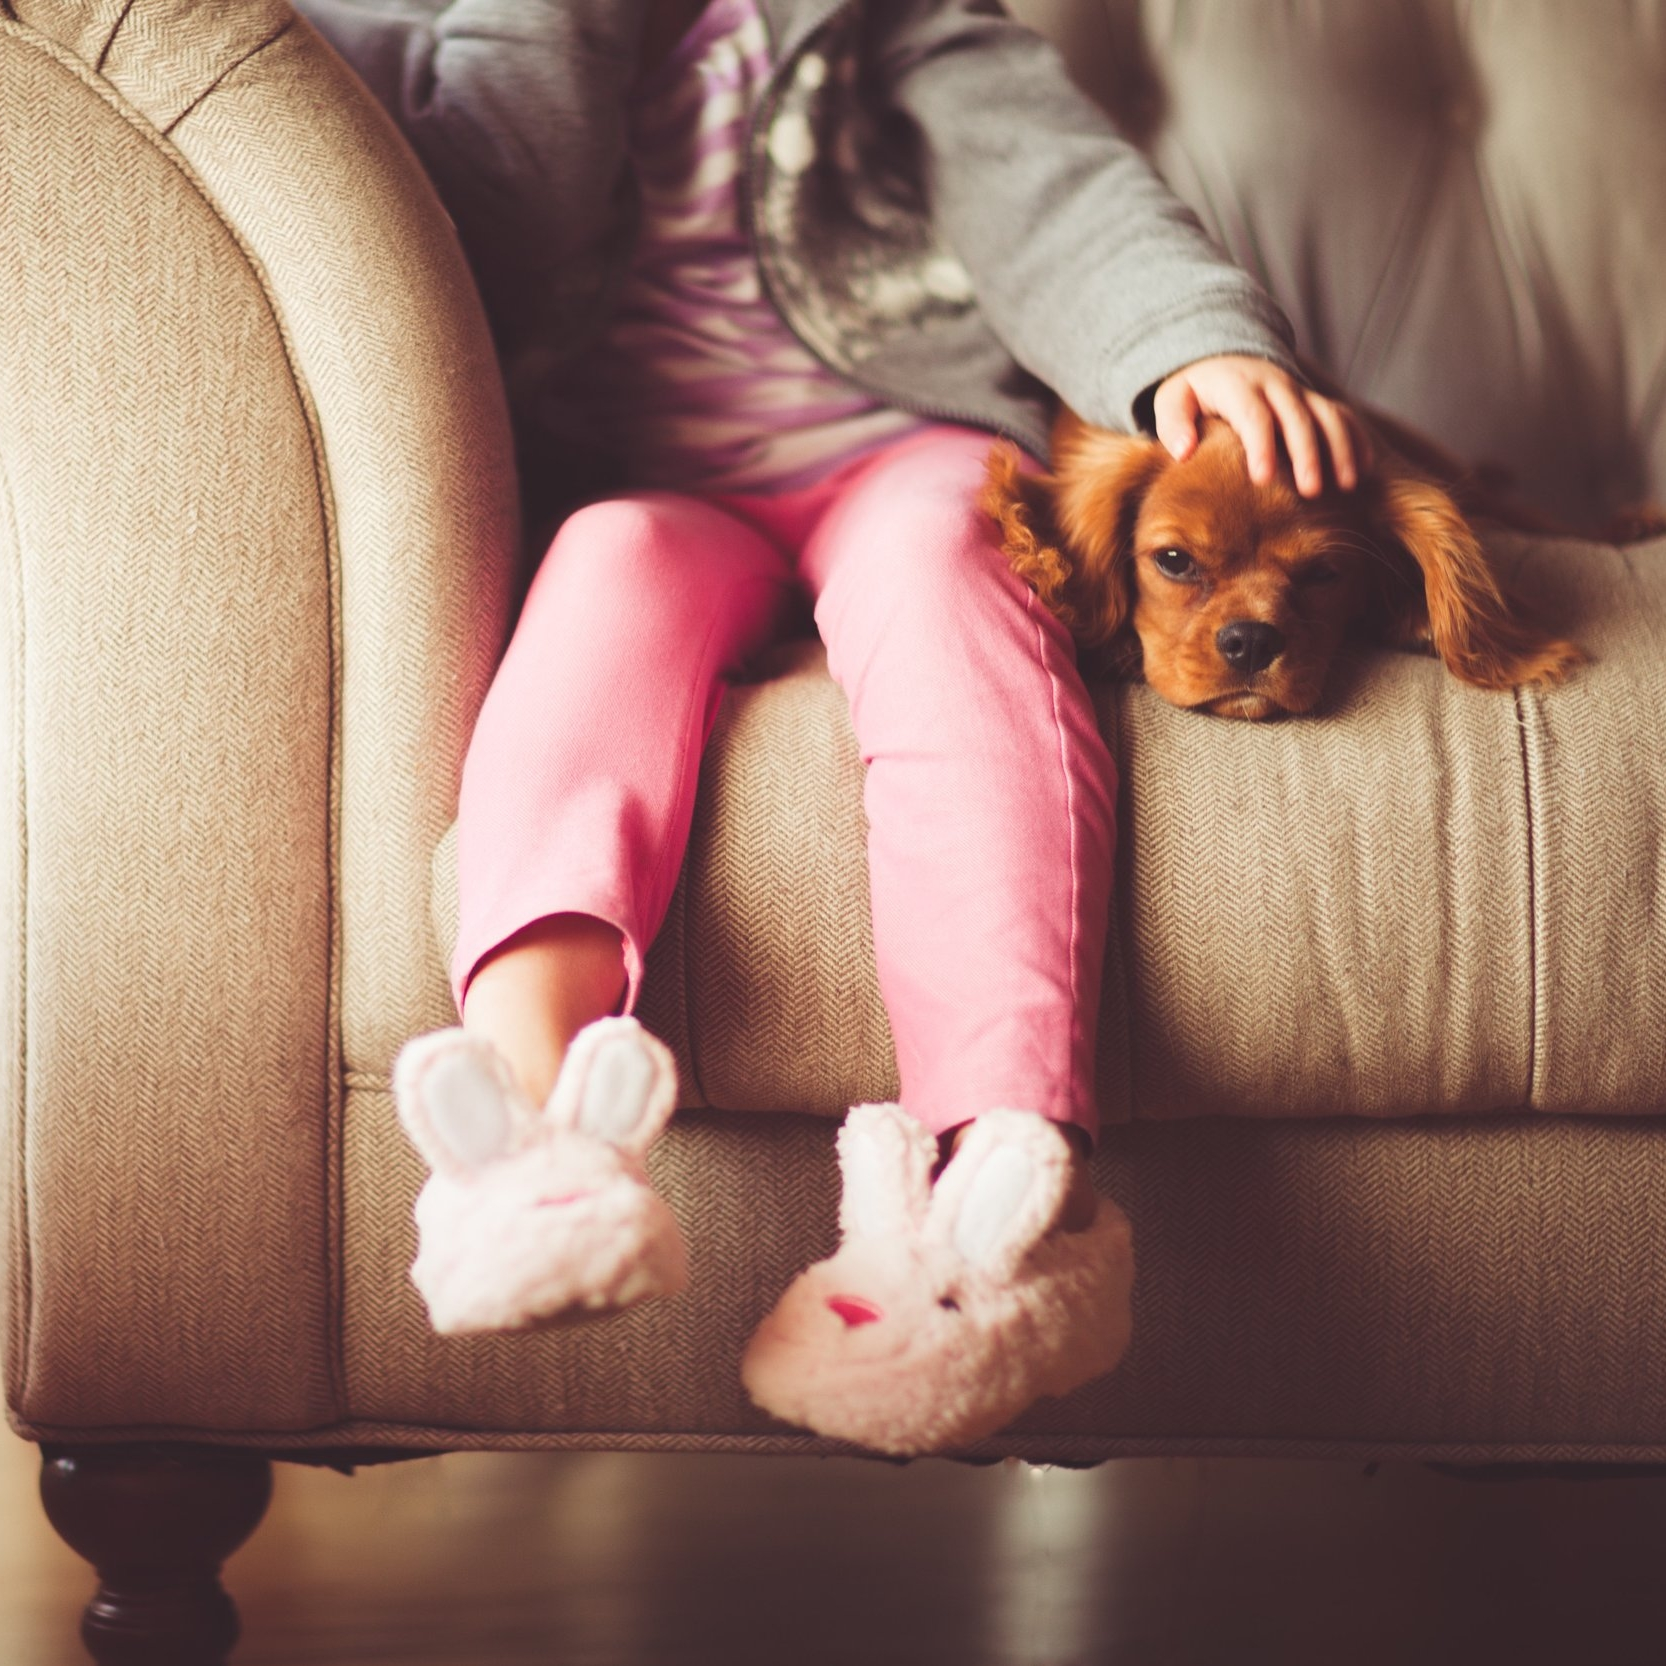 andrew branch little girl with dog on sofa Up cW.jpg